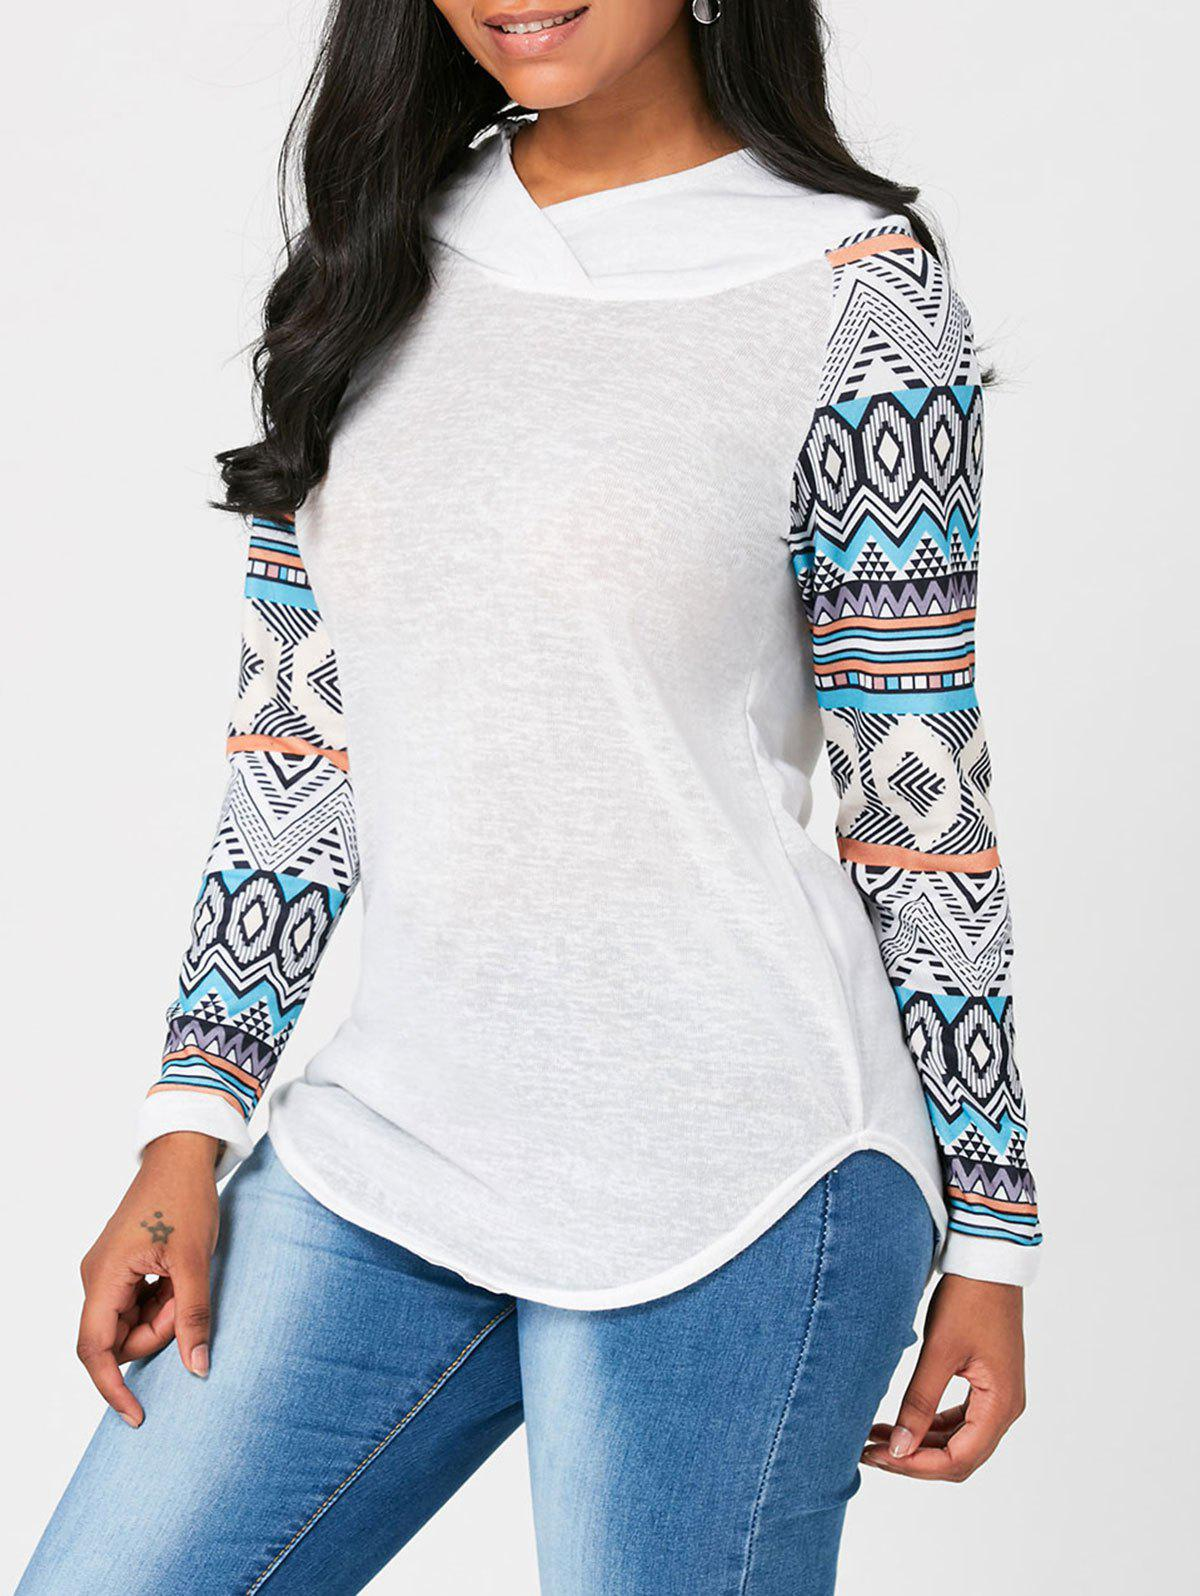 Long Raglan Sleeve Geometric Print Hooded T-shirtWOMEN<br><br>Size: XL; Color: WHITE; Material: Polyester; Shirt Length: Regular; Sleeve Length: Full; Collar: Hooded; Style: Casual; Sleeve Type: Raglan Sleeve; Pattern Type: Geometric,Print; Season: Fall,Spring; Elasticity: Micro-elastic; Weight: 0.3500kg; Package Contents: 1 x T-shirt;